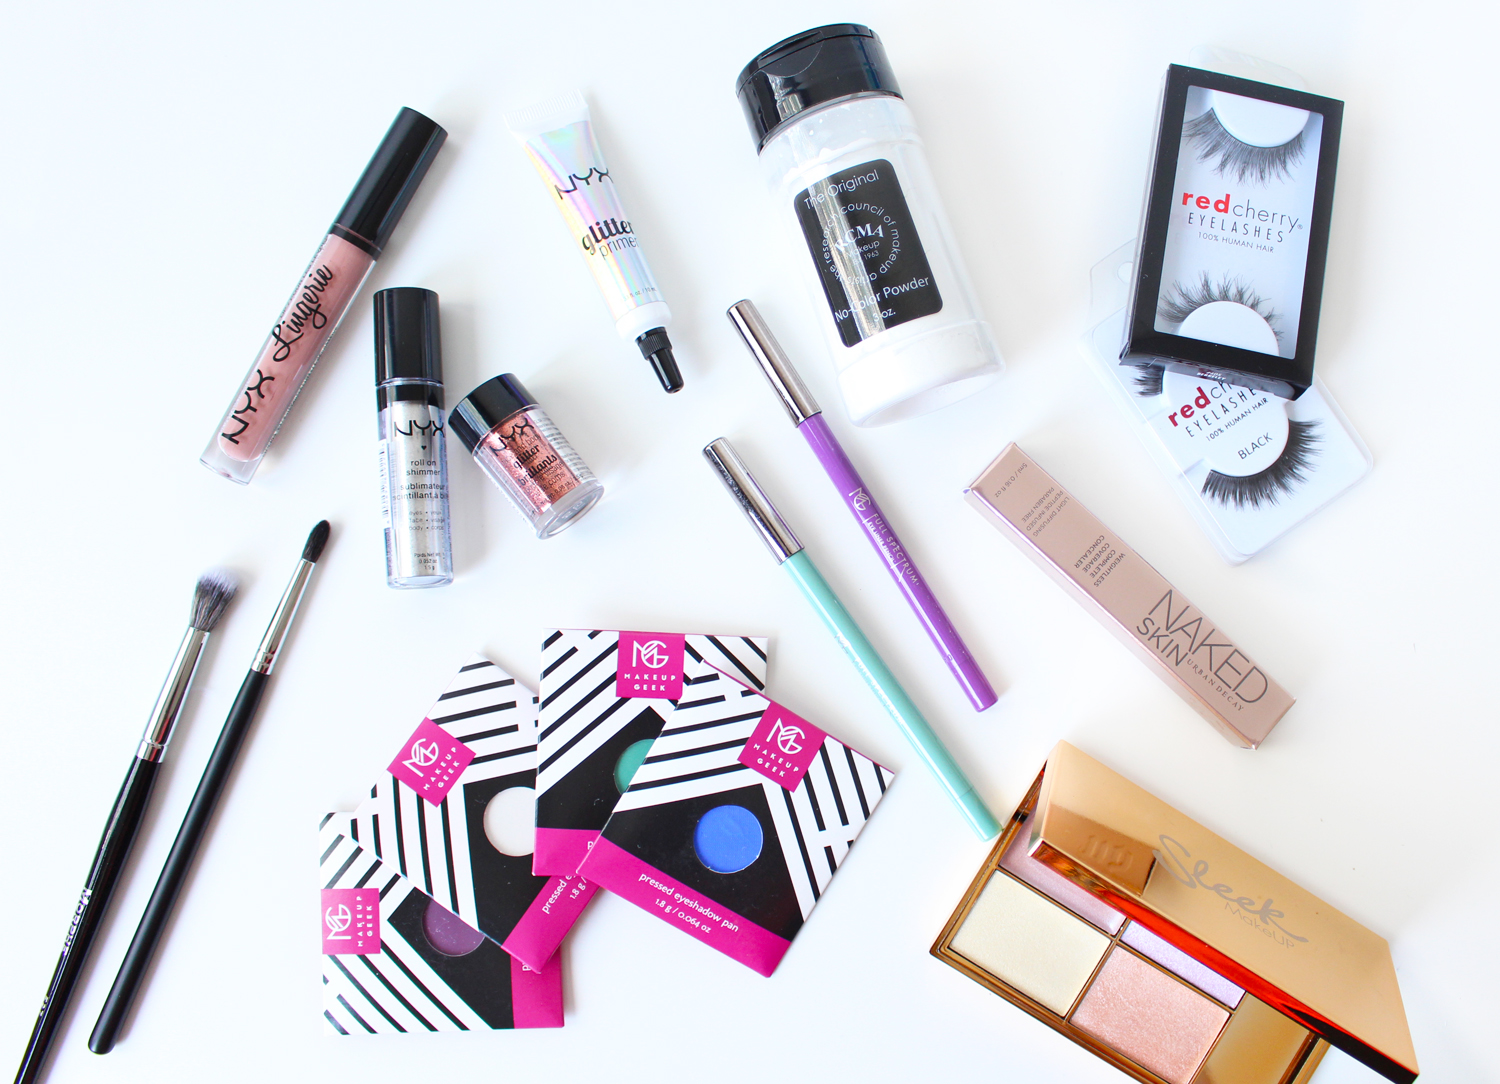 bloggers made me buy it makeup haul